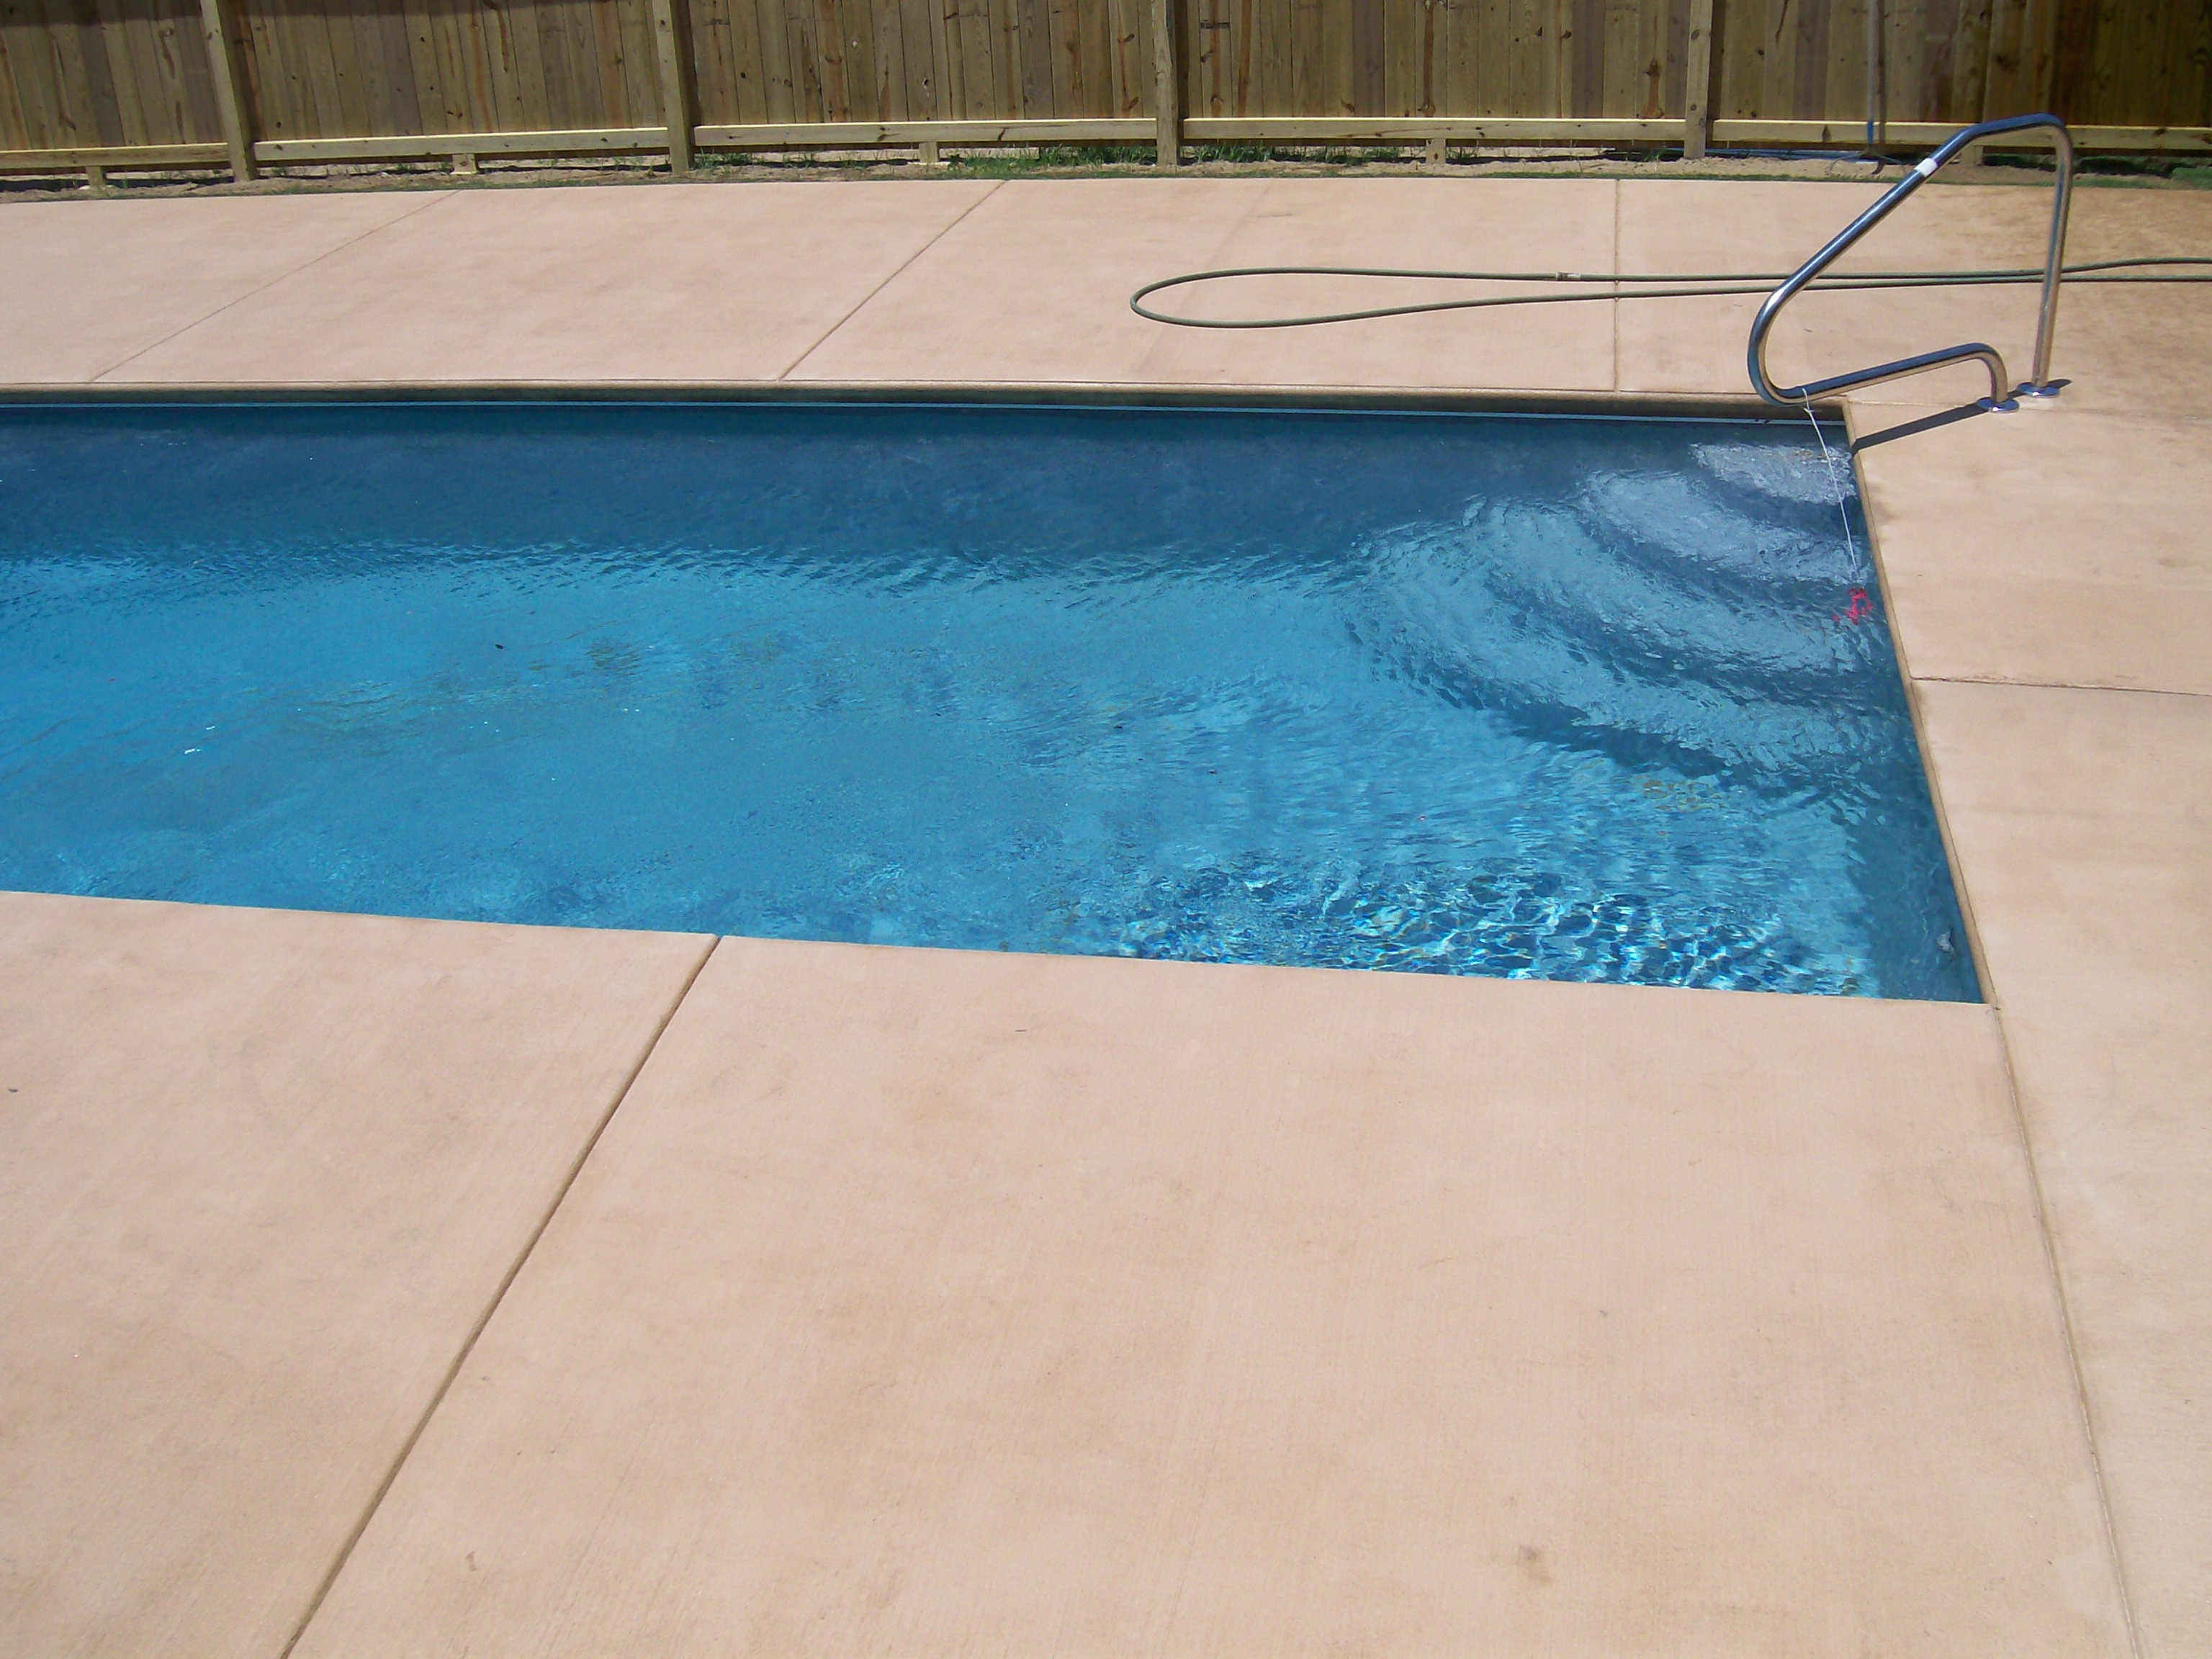 Concrete Pool Deck Finishes Heller Concrete Inc. Serving The Outer Banks Of North Carolina